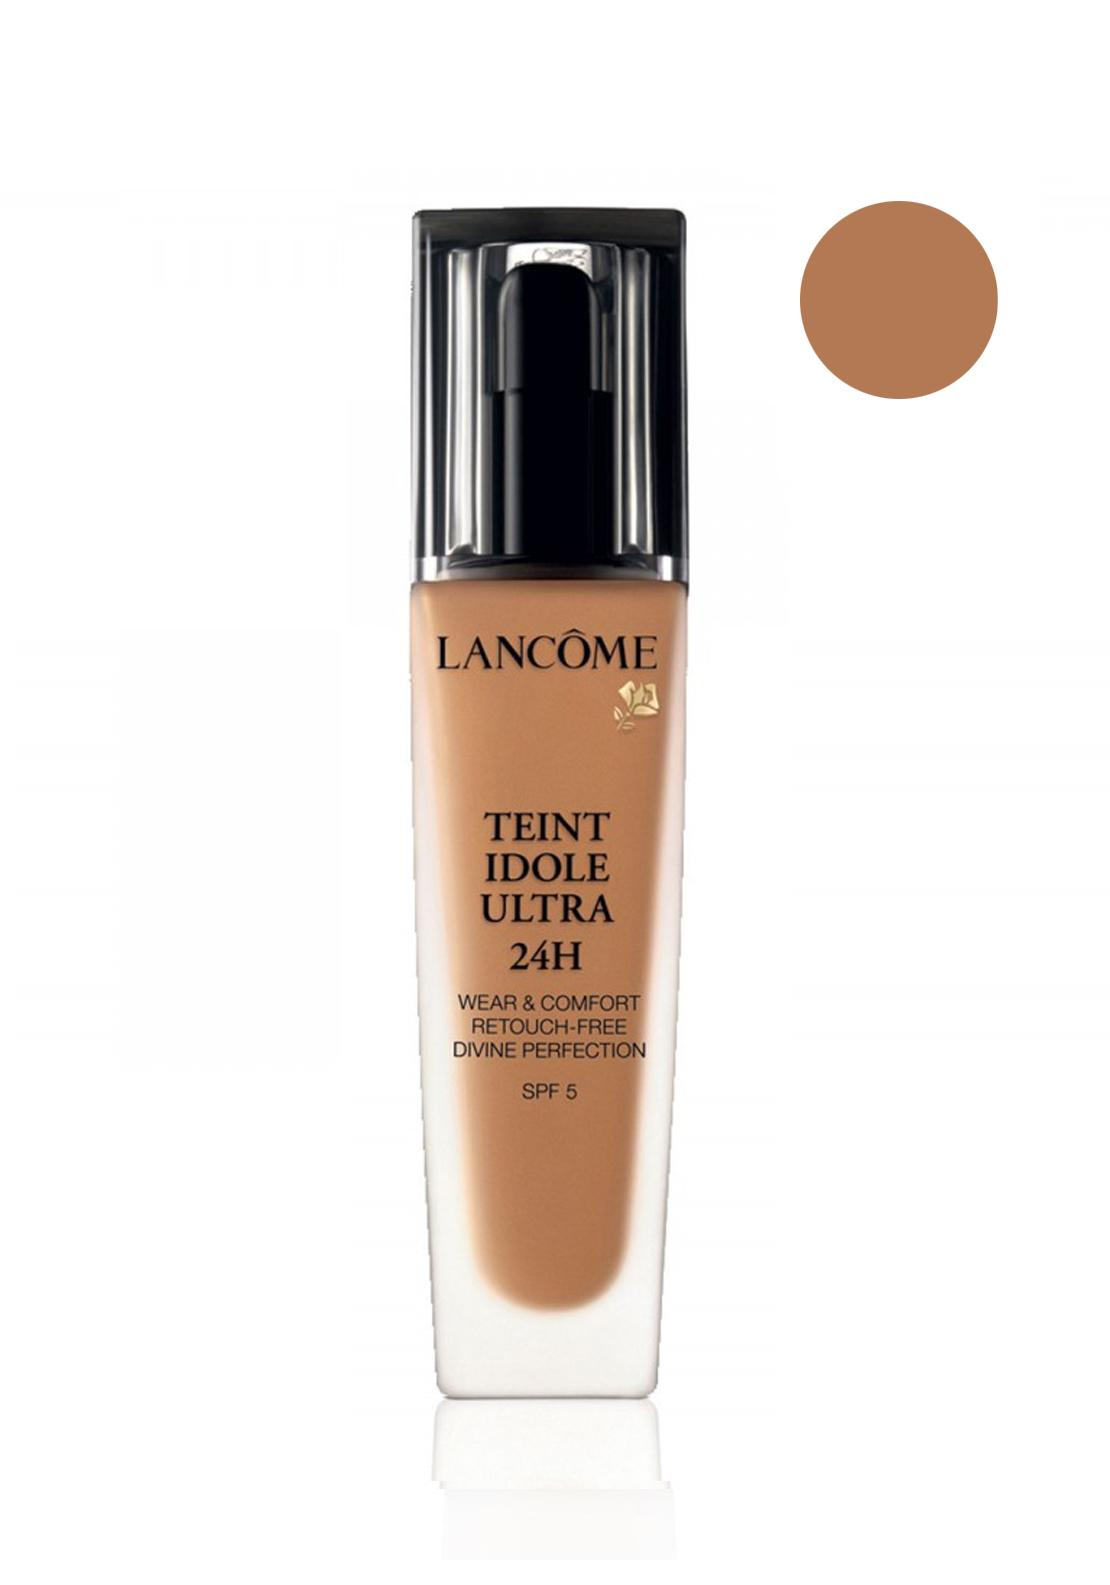 Lancome Teint Idole Ultra Foundation, Lancome Praline 30ml